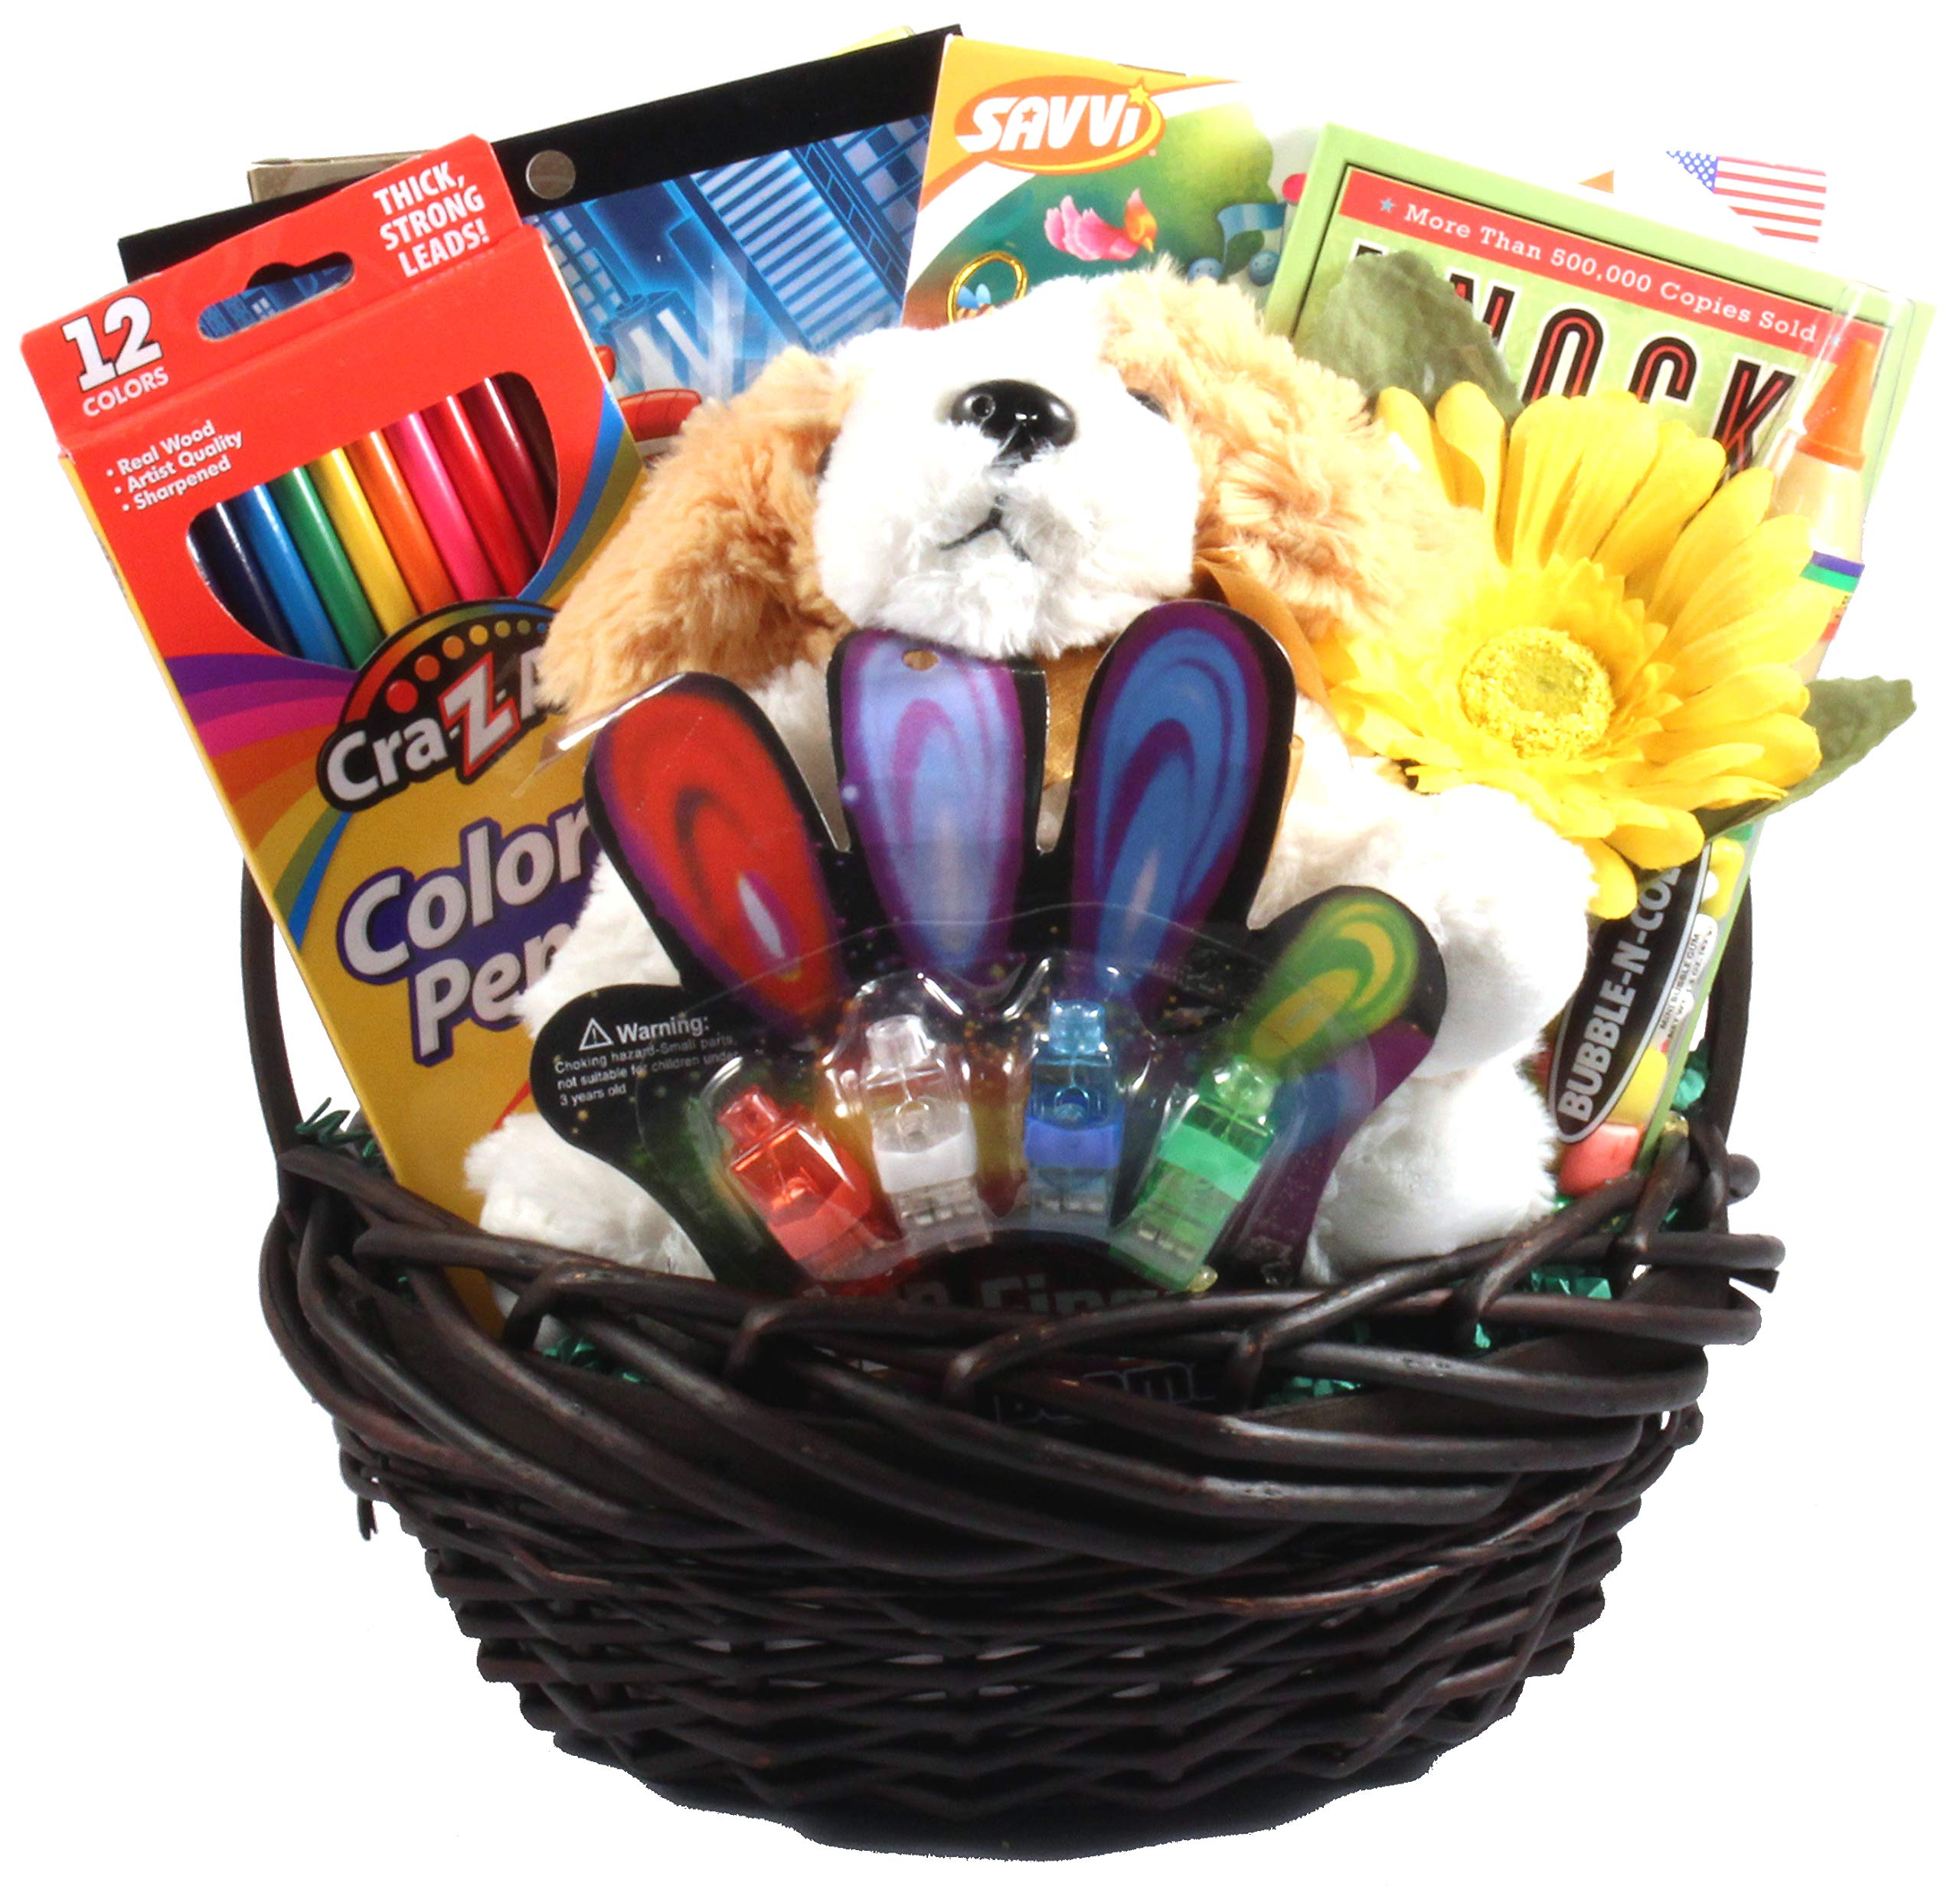 Kids Only - An Activity Gift Basket For Just For Children With Activities, A Plush Friend And A Sweet Treat - Will Make Any Child Feel Special by Gift Basket Village